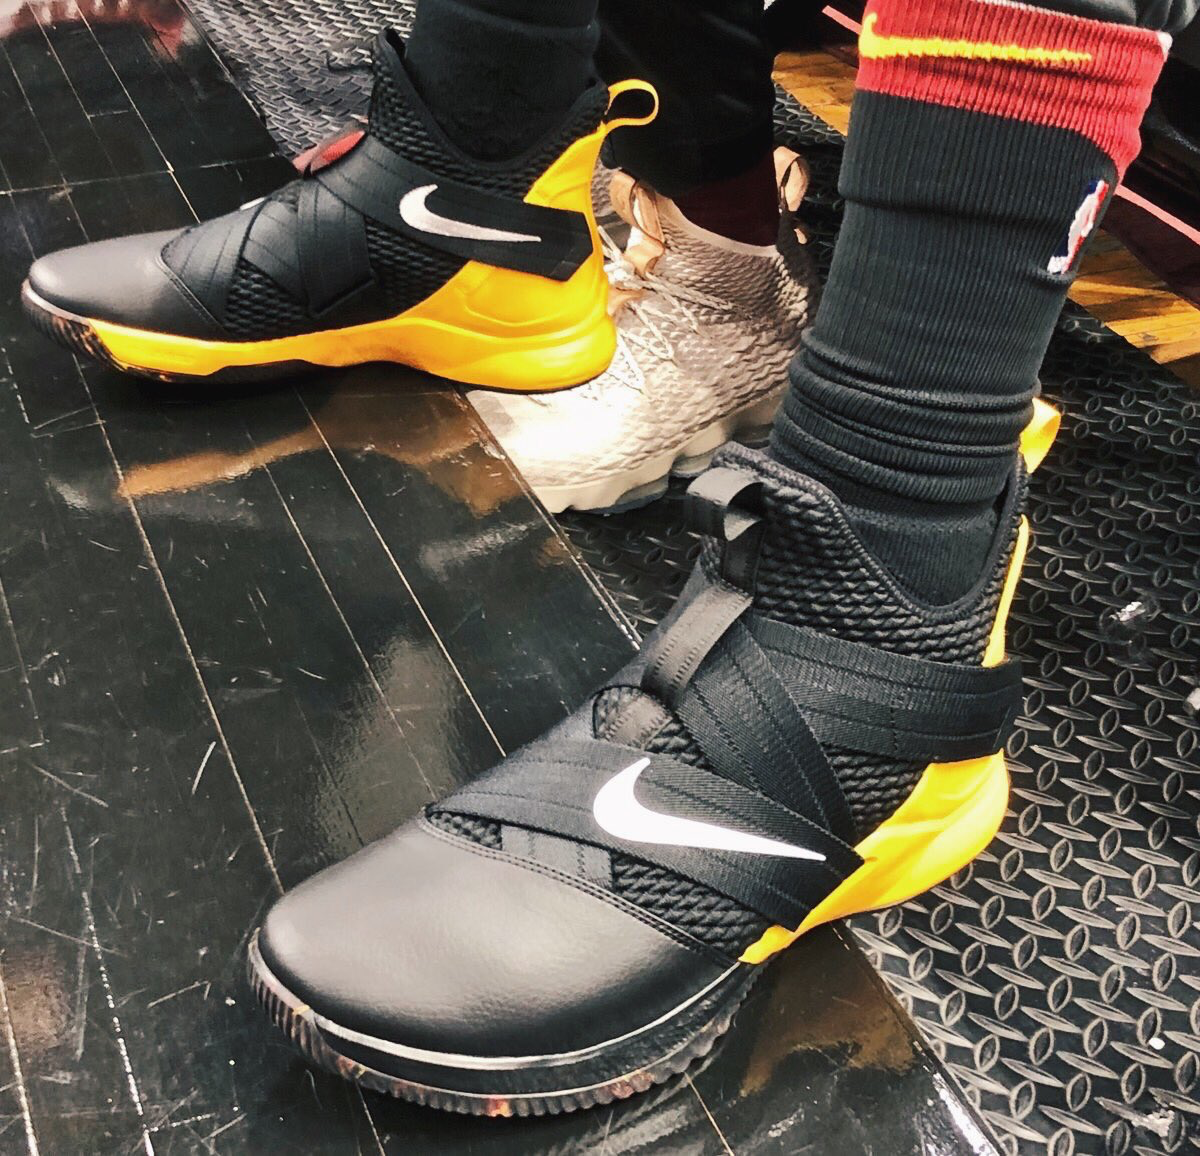 782649ad RealTristan13 debuts a new LeBron Soldier 12 colorway for Game 1 👀  #BRKicks 📸 by @NBA .